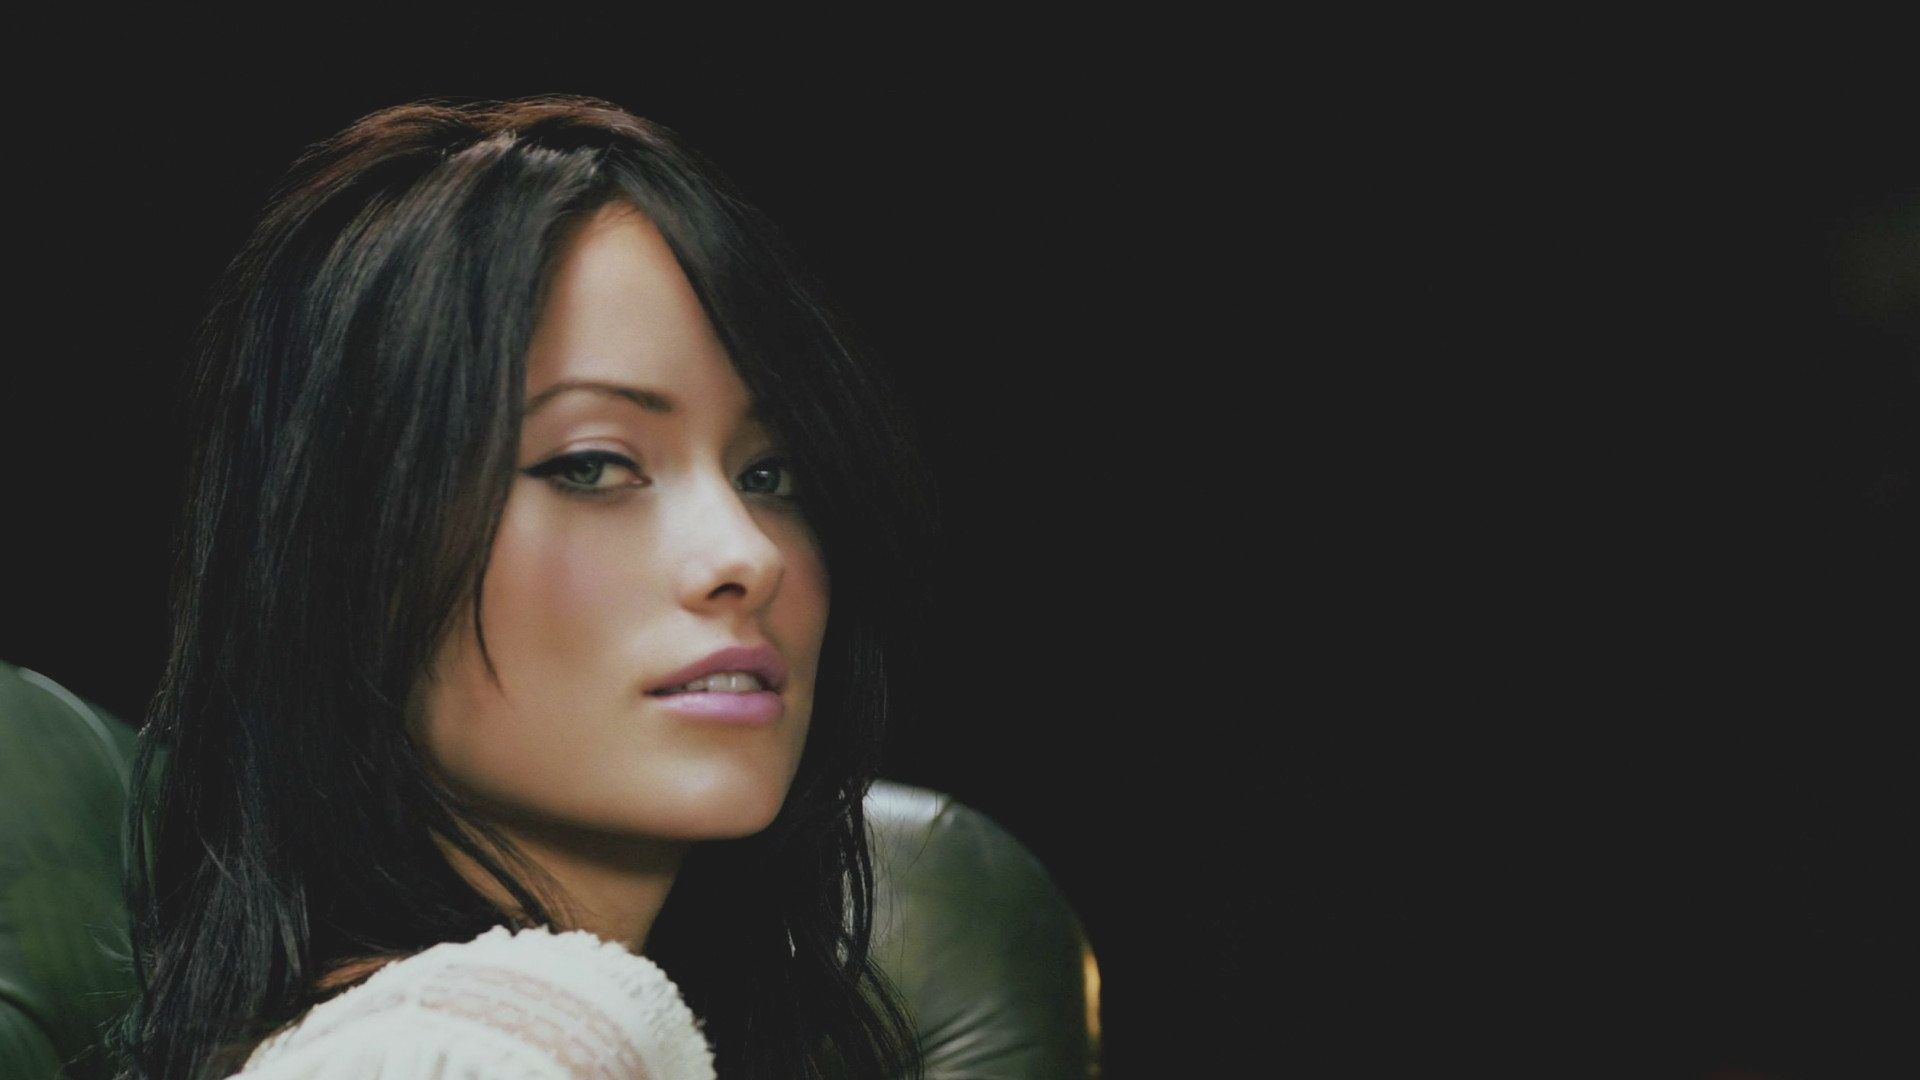 olivia wilde hairstyle face wallpapers hd